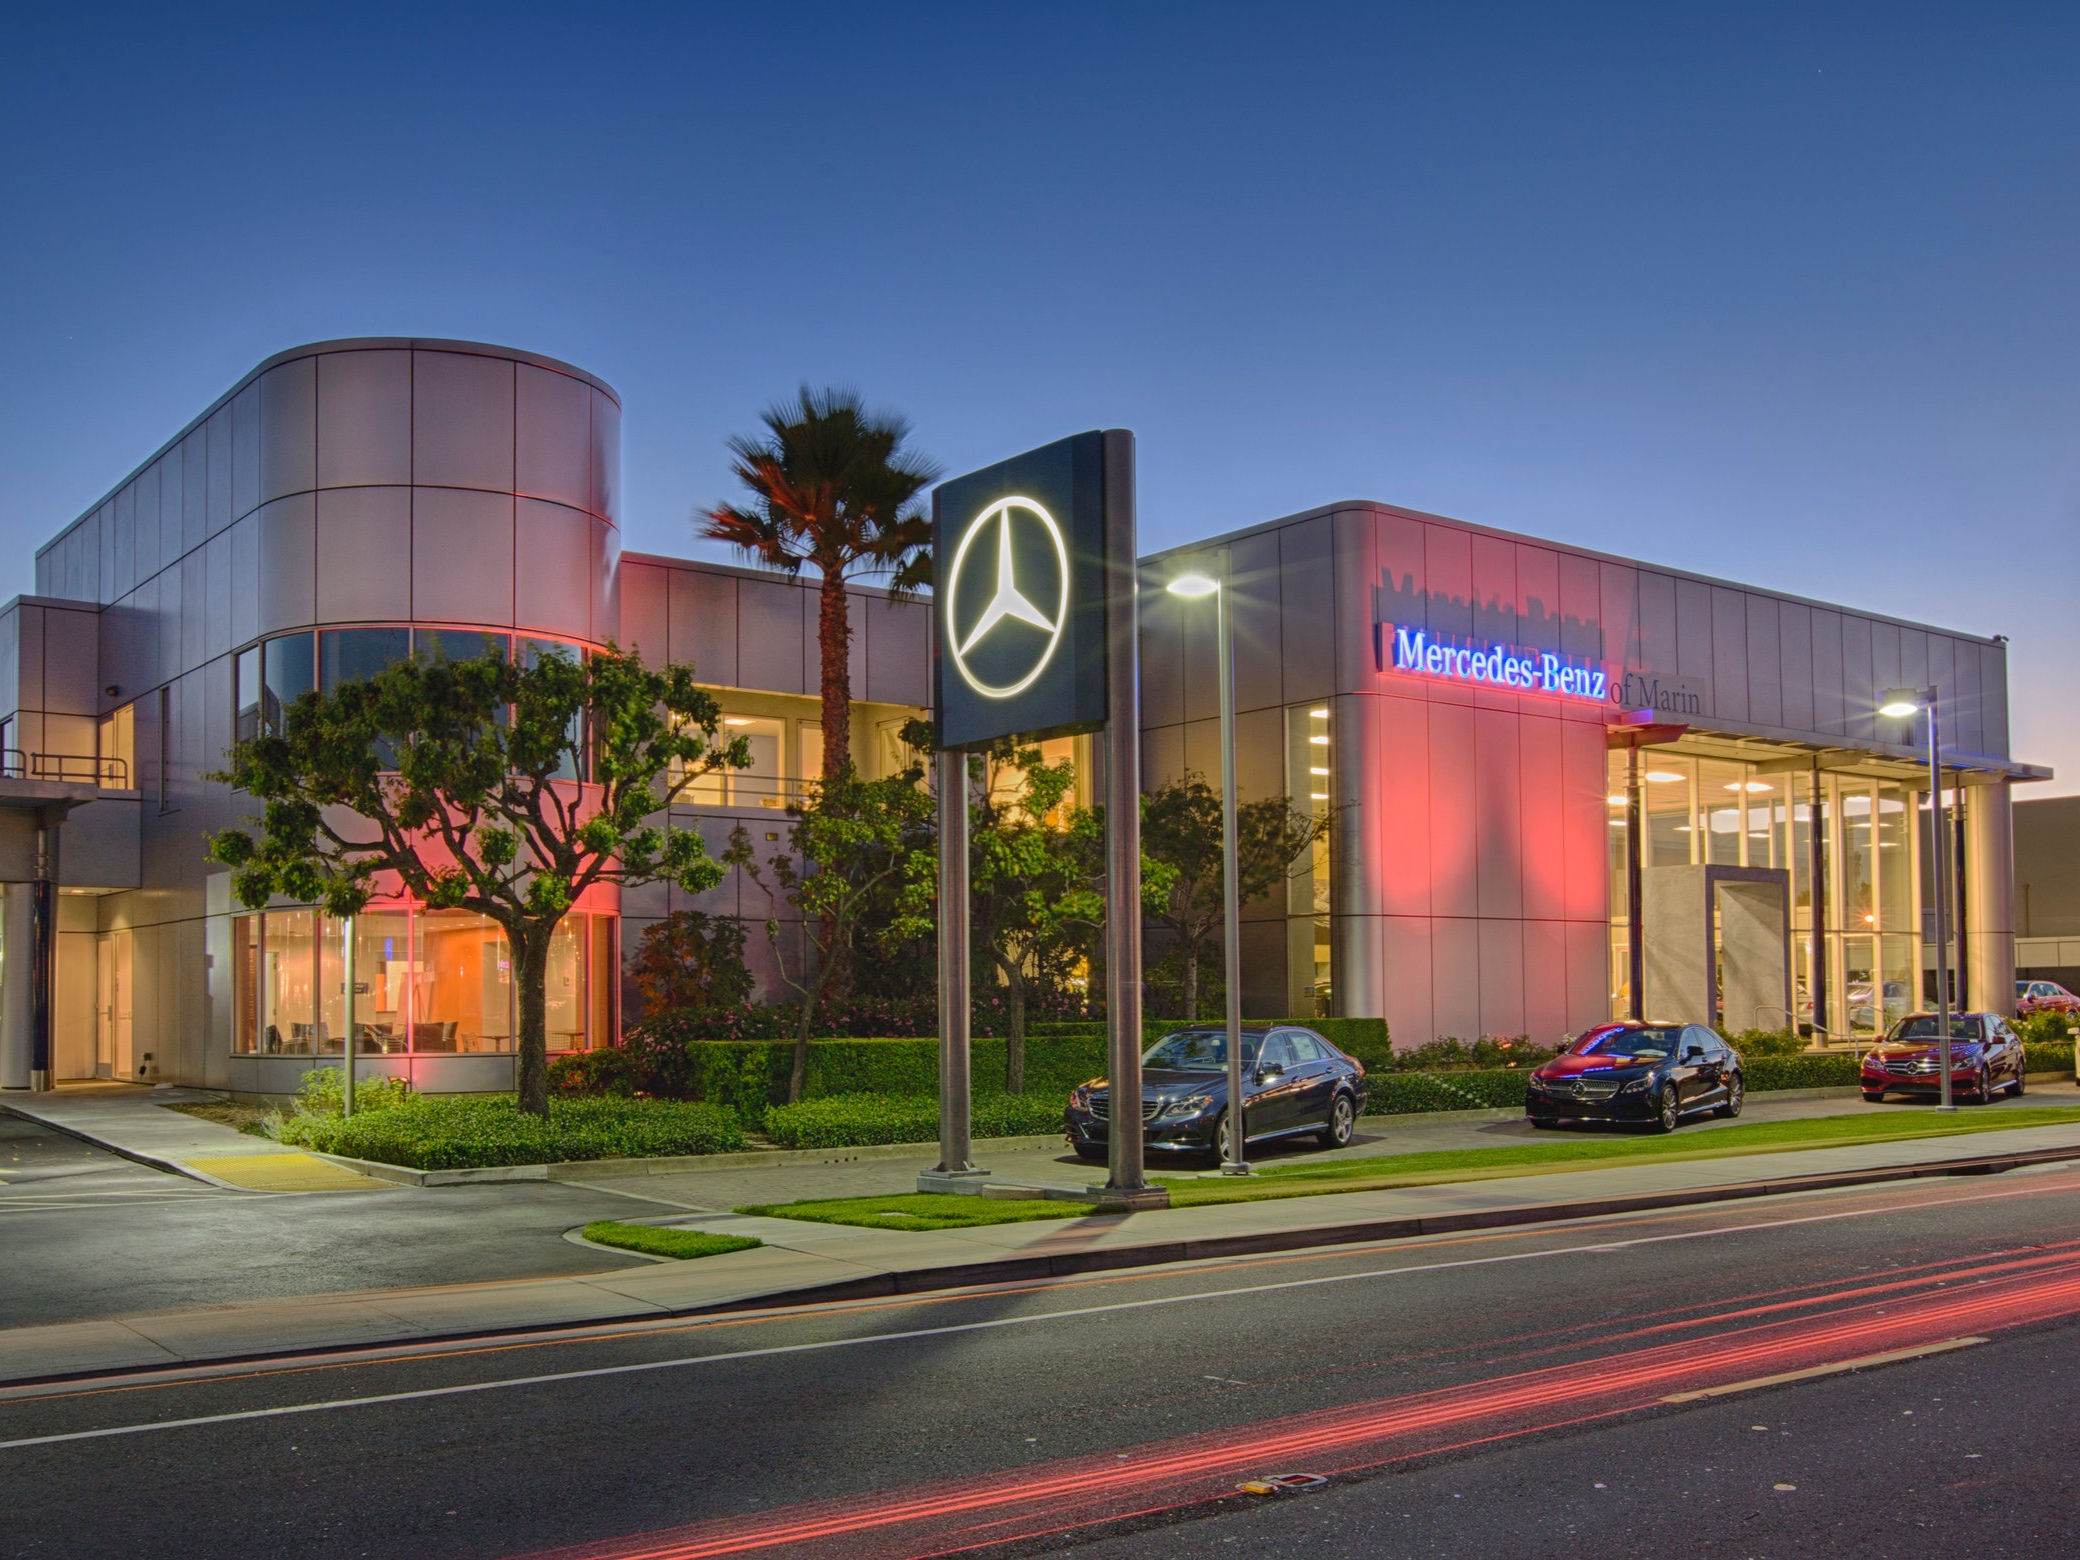 Mercedes Benz of The Bay Area - Whiteside Concrete Construction has been a part of the Mercedes-Benz master franchise expansion process in the Bay Areas. Performing successful franchise structural projects and renovations at the San Francisco, Marin and Fairfield Mercedes-Benz dealerships.